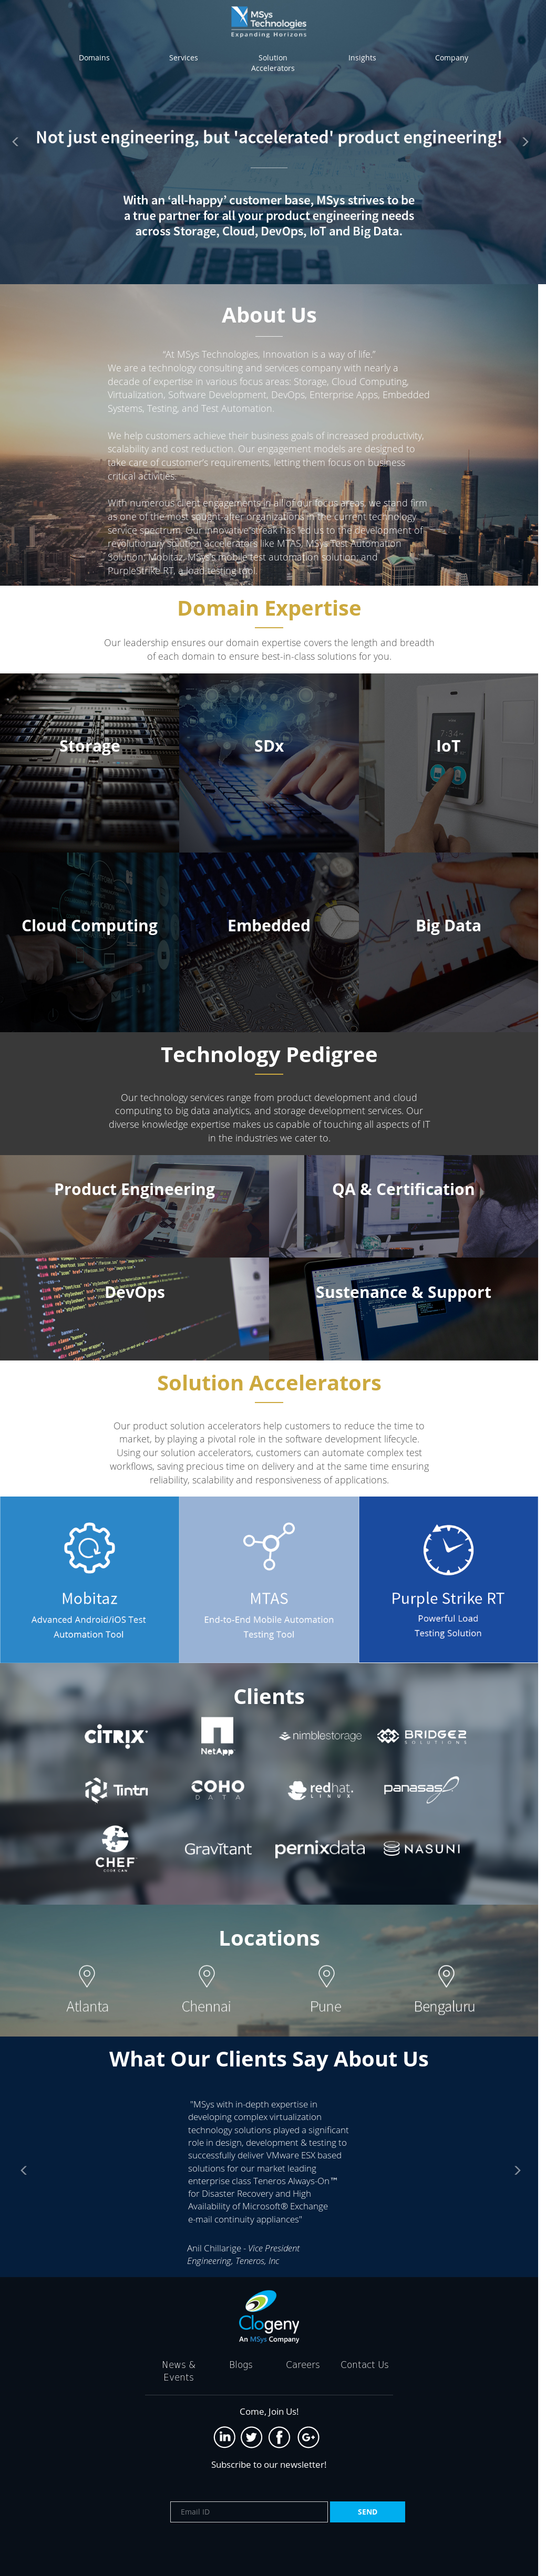 MSys Technologies Competitors, Revenue and Employees - Owler Company